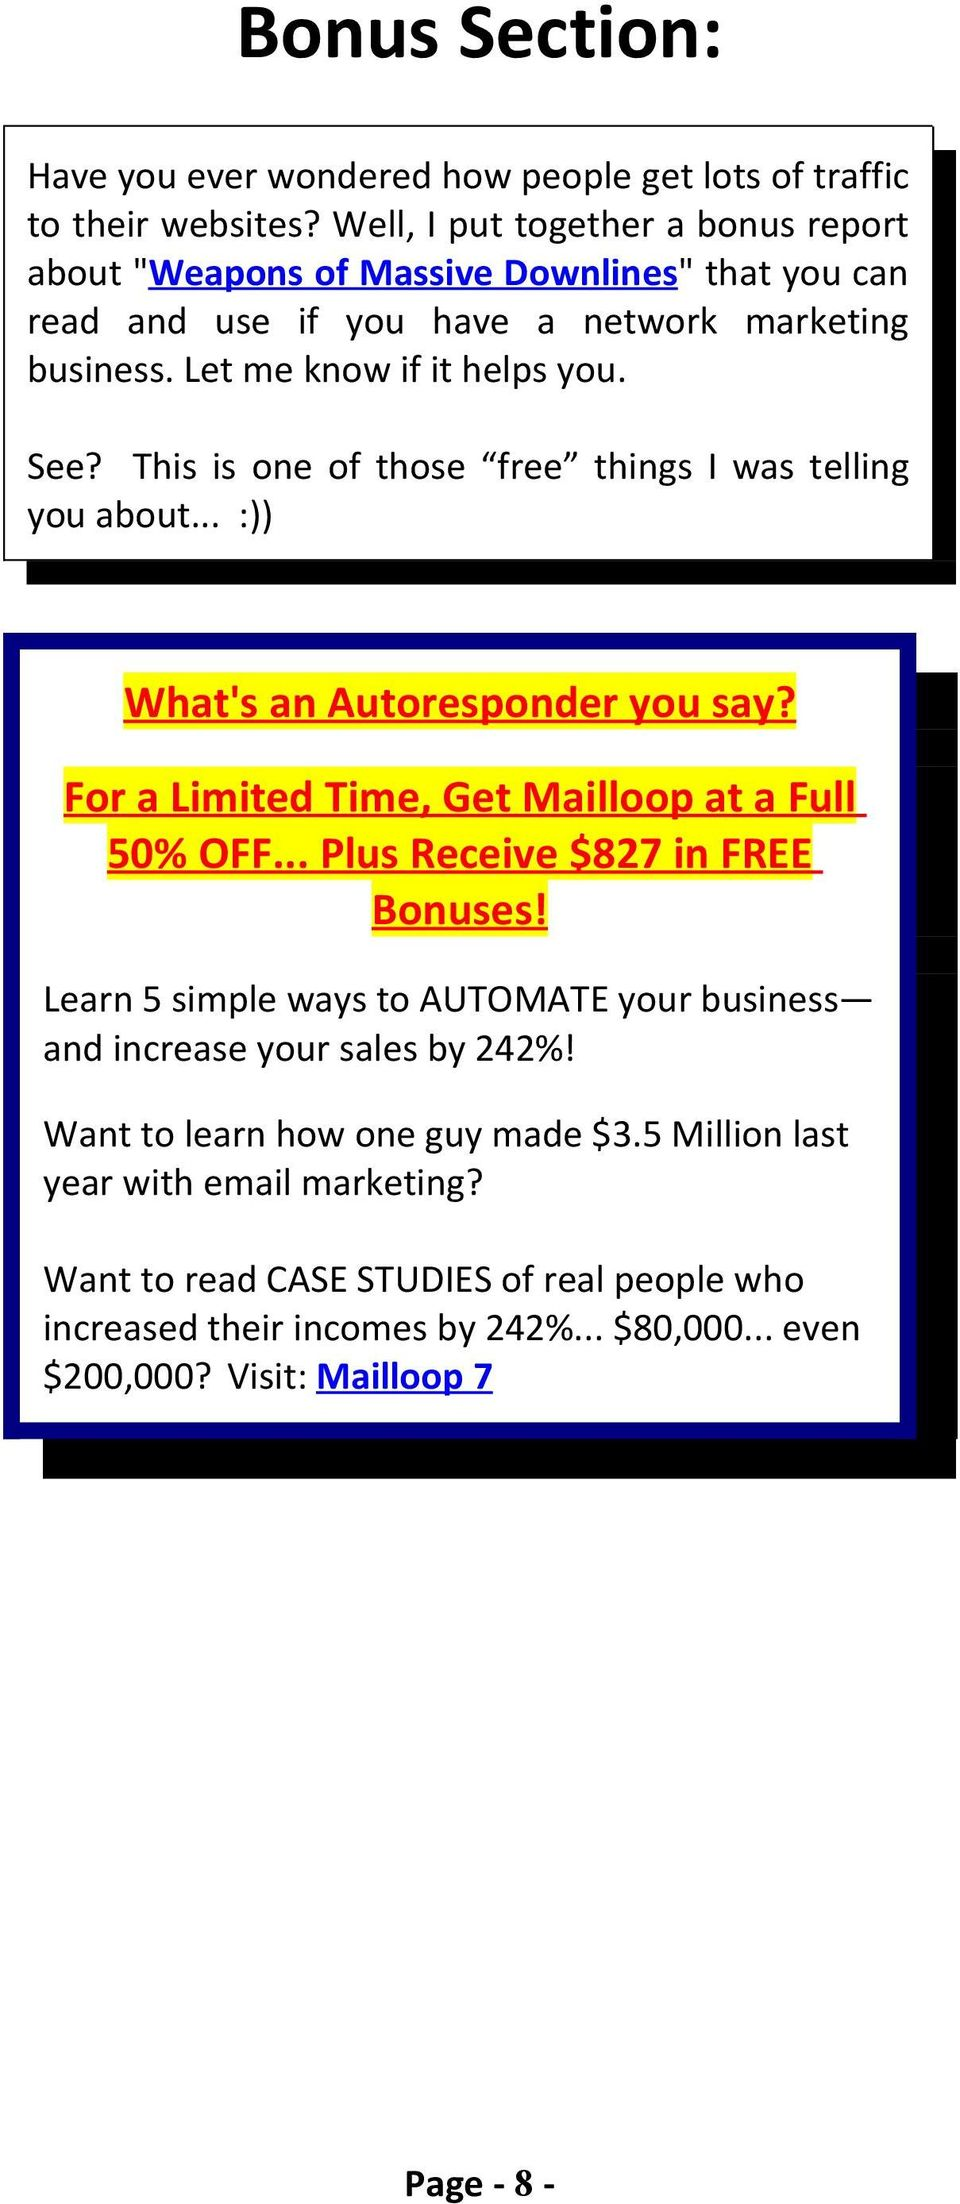 This is one of those free things I was telling you about... :)) What's an Autoresponder you say? For a Limited Time, Get Mailloop at a Full 50% OFF... Plus Receive $827 in FREE Bonuses!